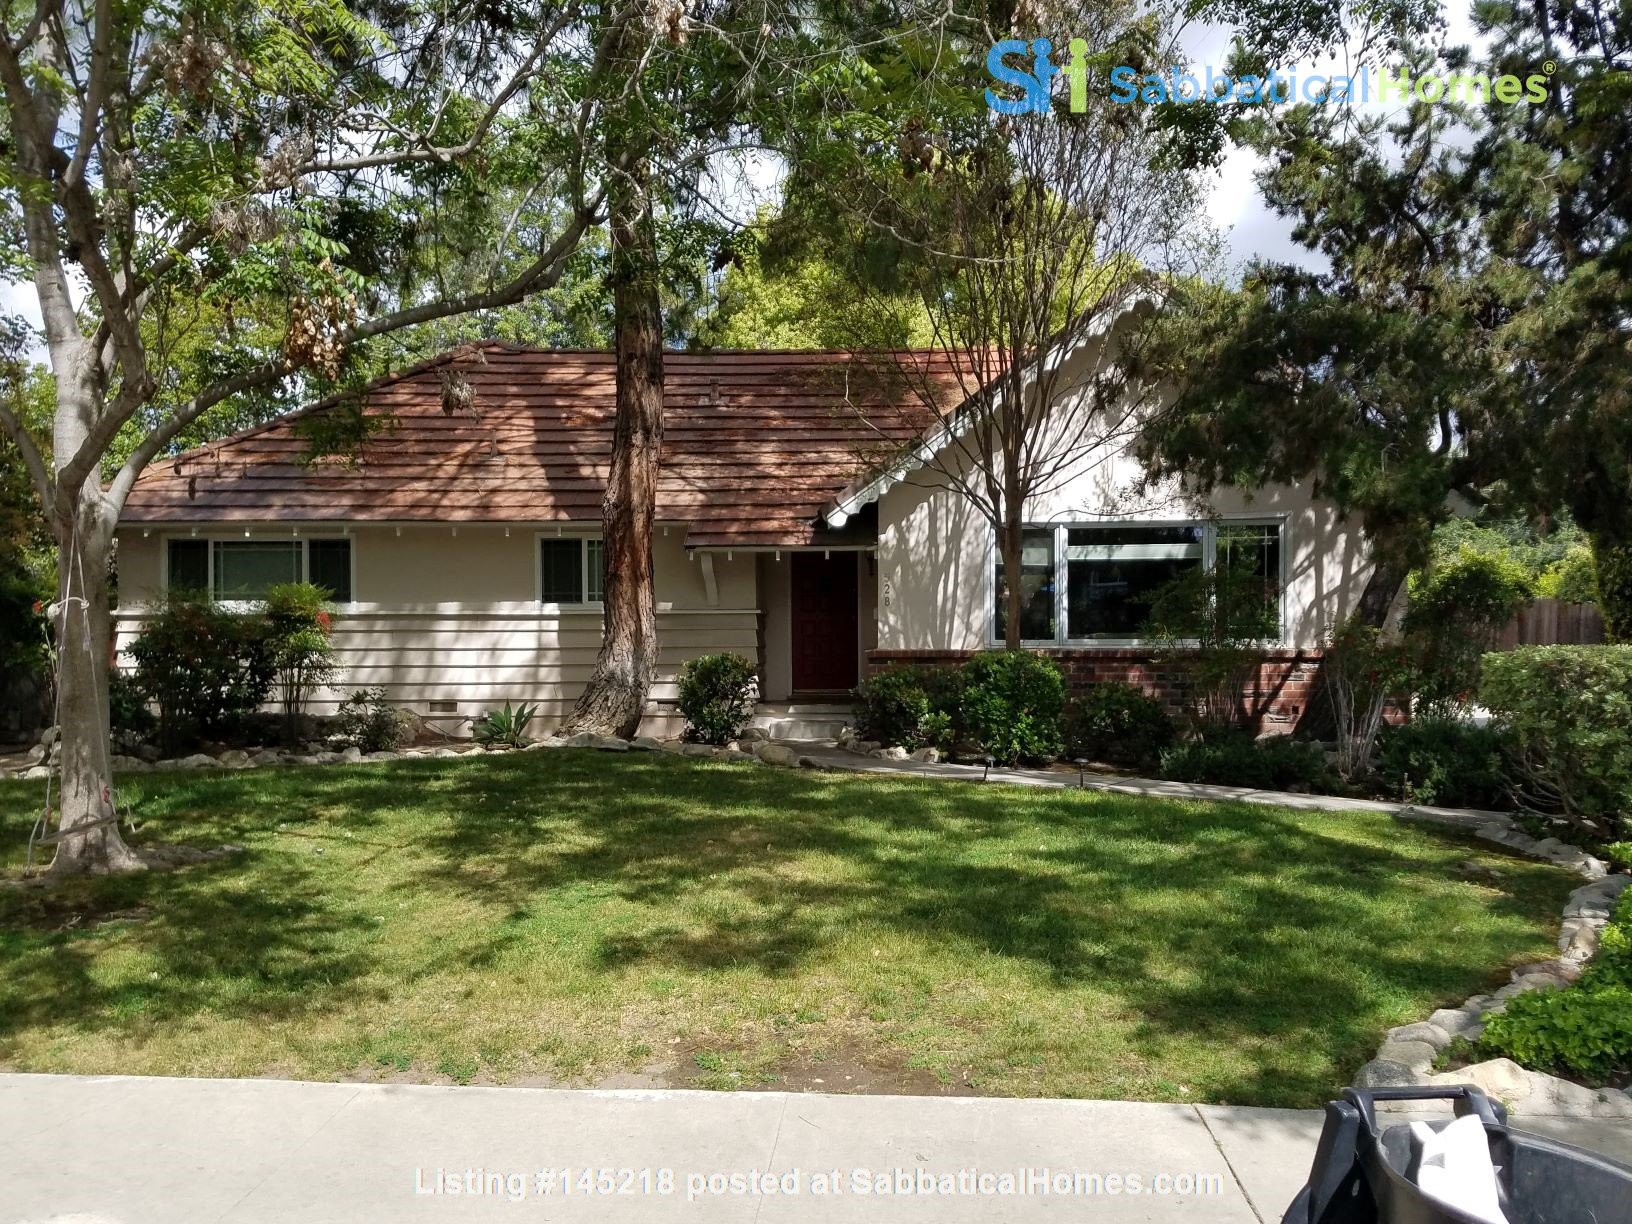 Leafy SoCal home with patios, fire pit in charming college foothills town Home Rental in Claremont, California, United States 0